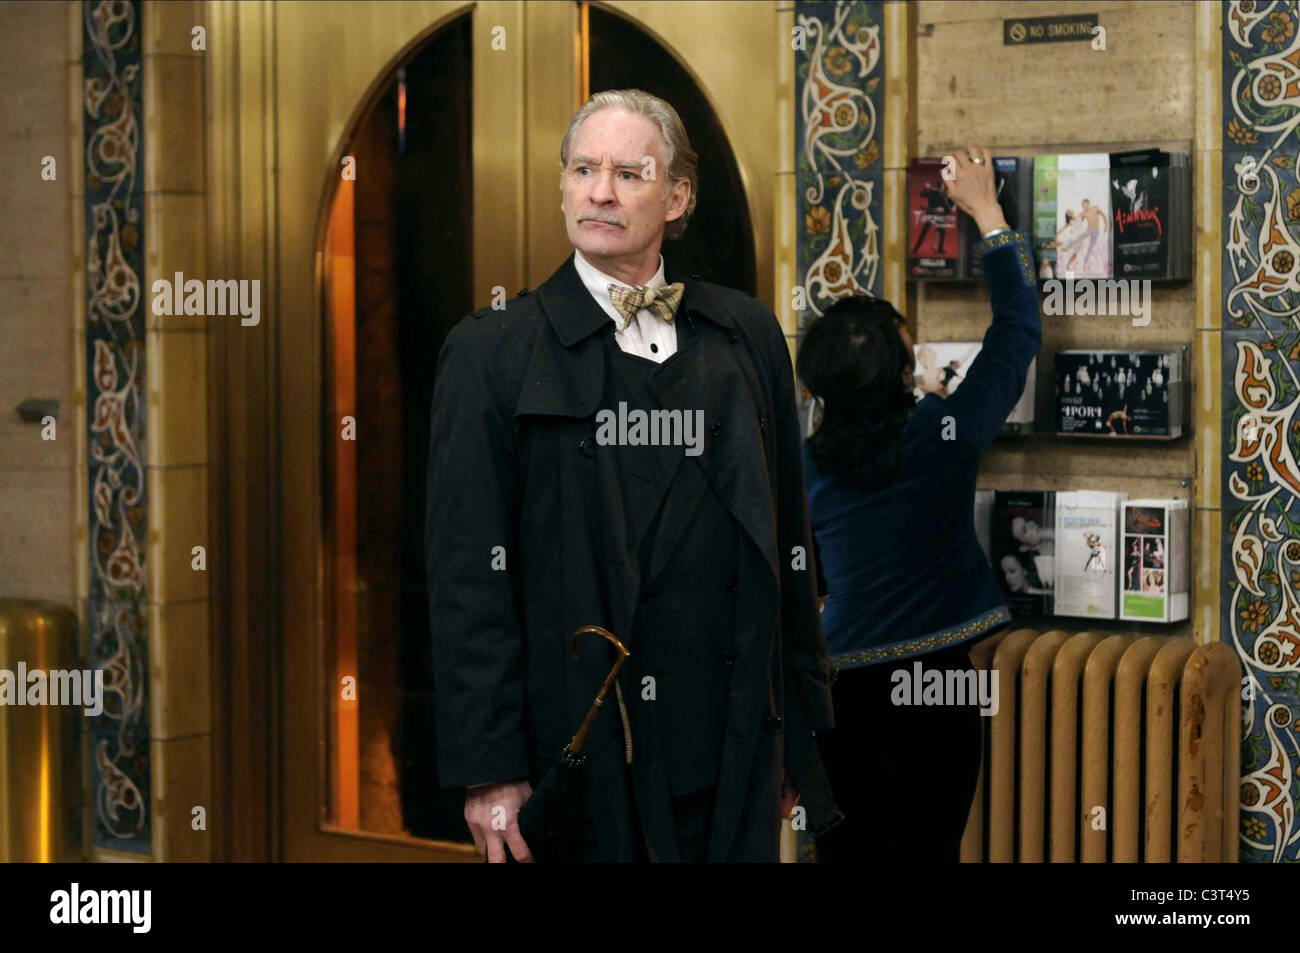 KEVIN KLINE THE EXTRA MAN (2010) - Stock Image